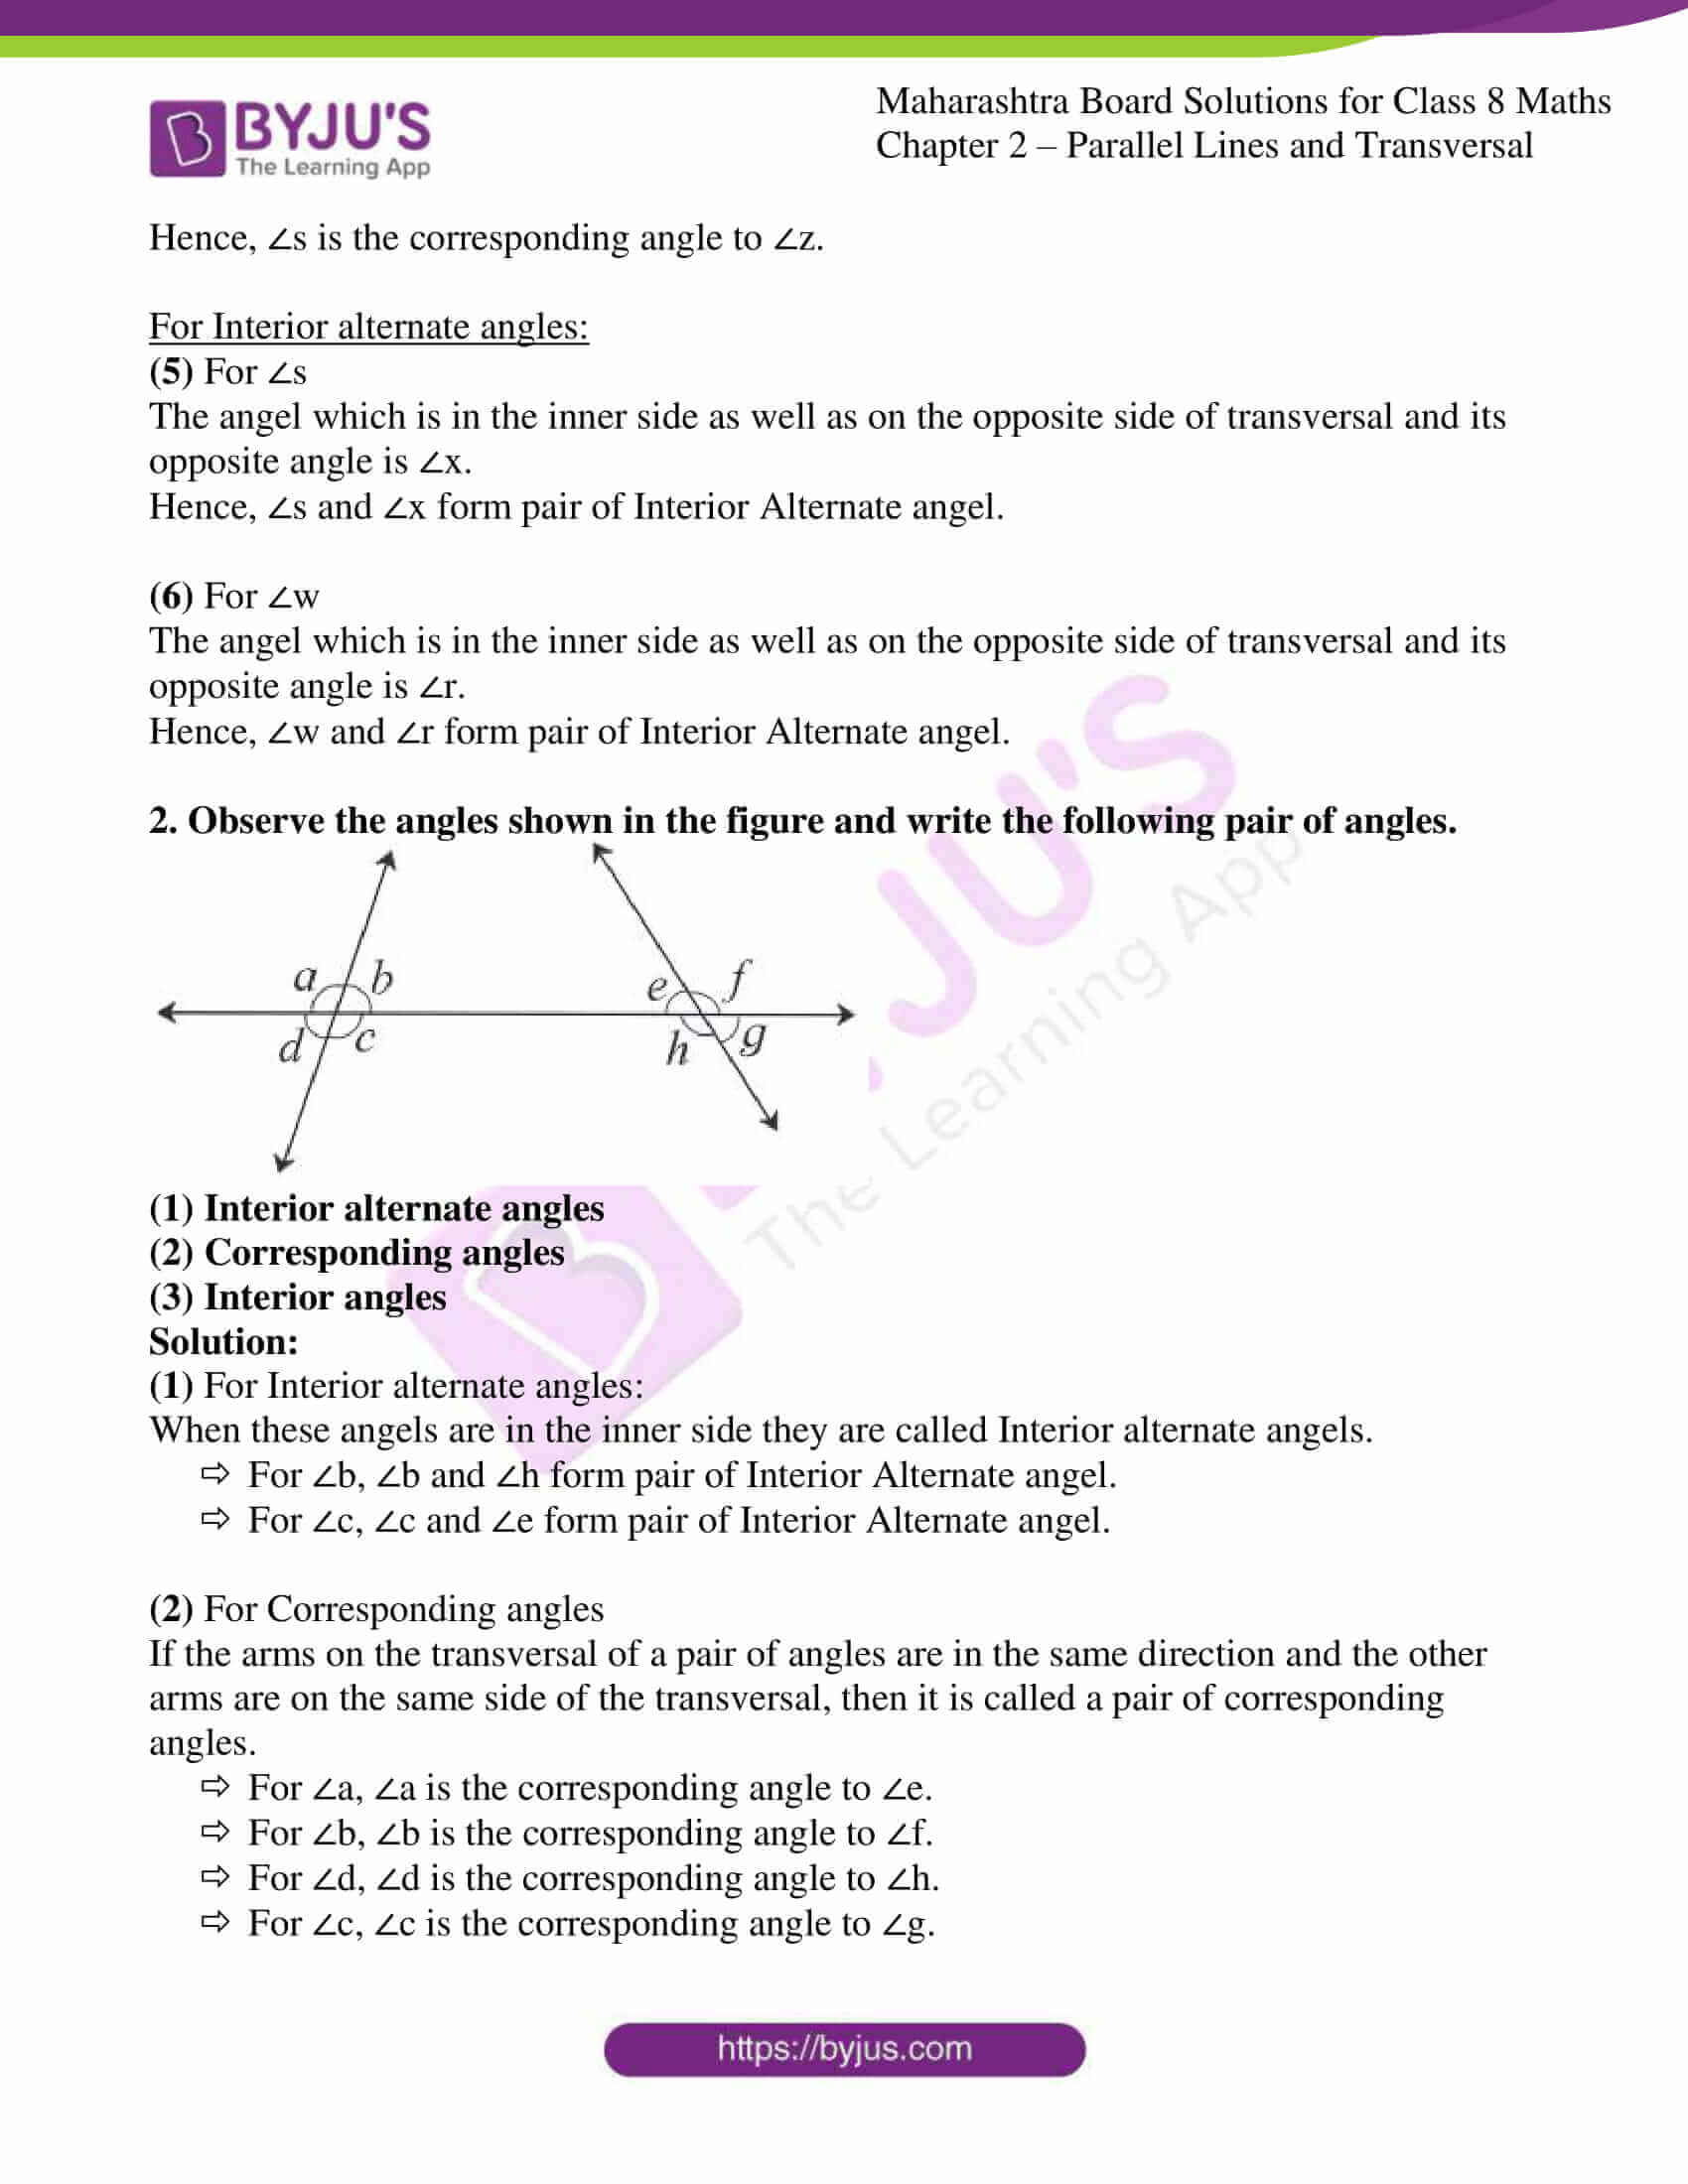 msbshse sol for class 8 maths chapter 2 02